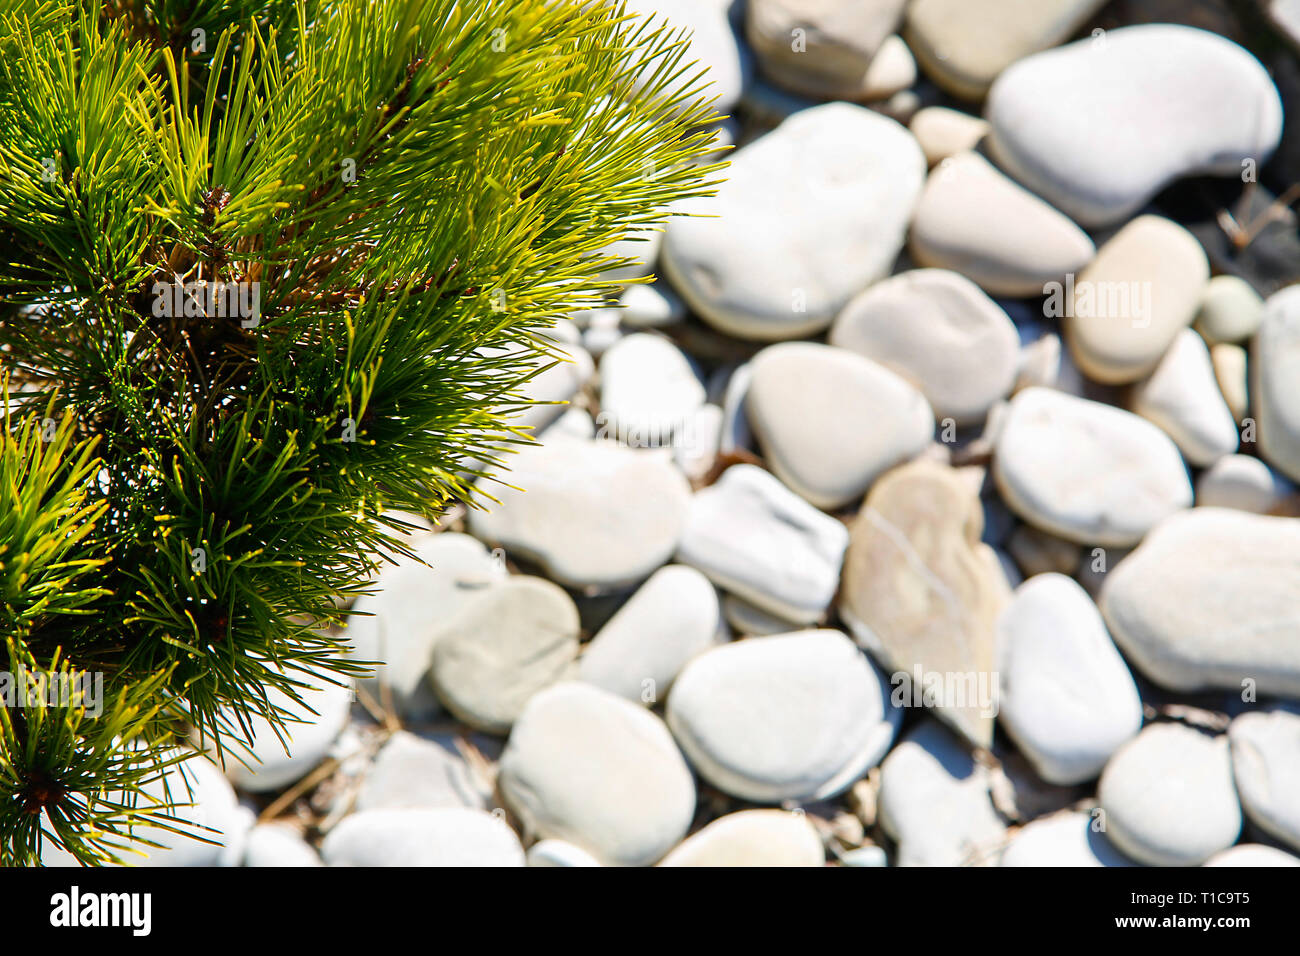 Evergreen coniferous tree on a blurred background of pebbles.Texture.Background. - Stock Image